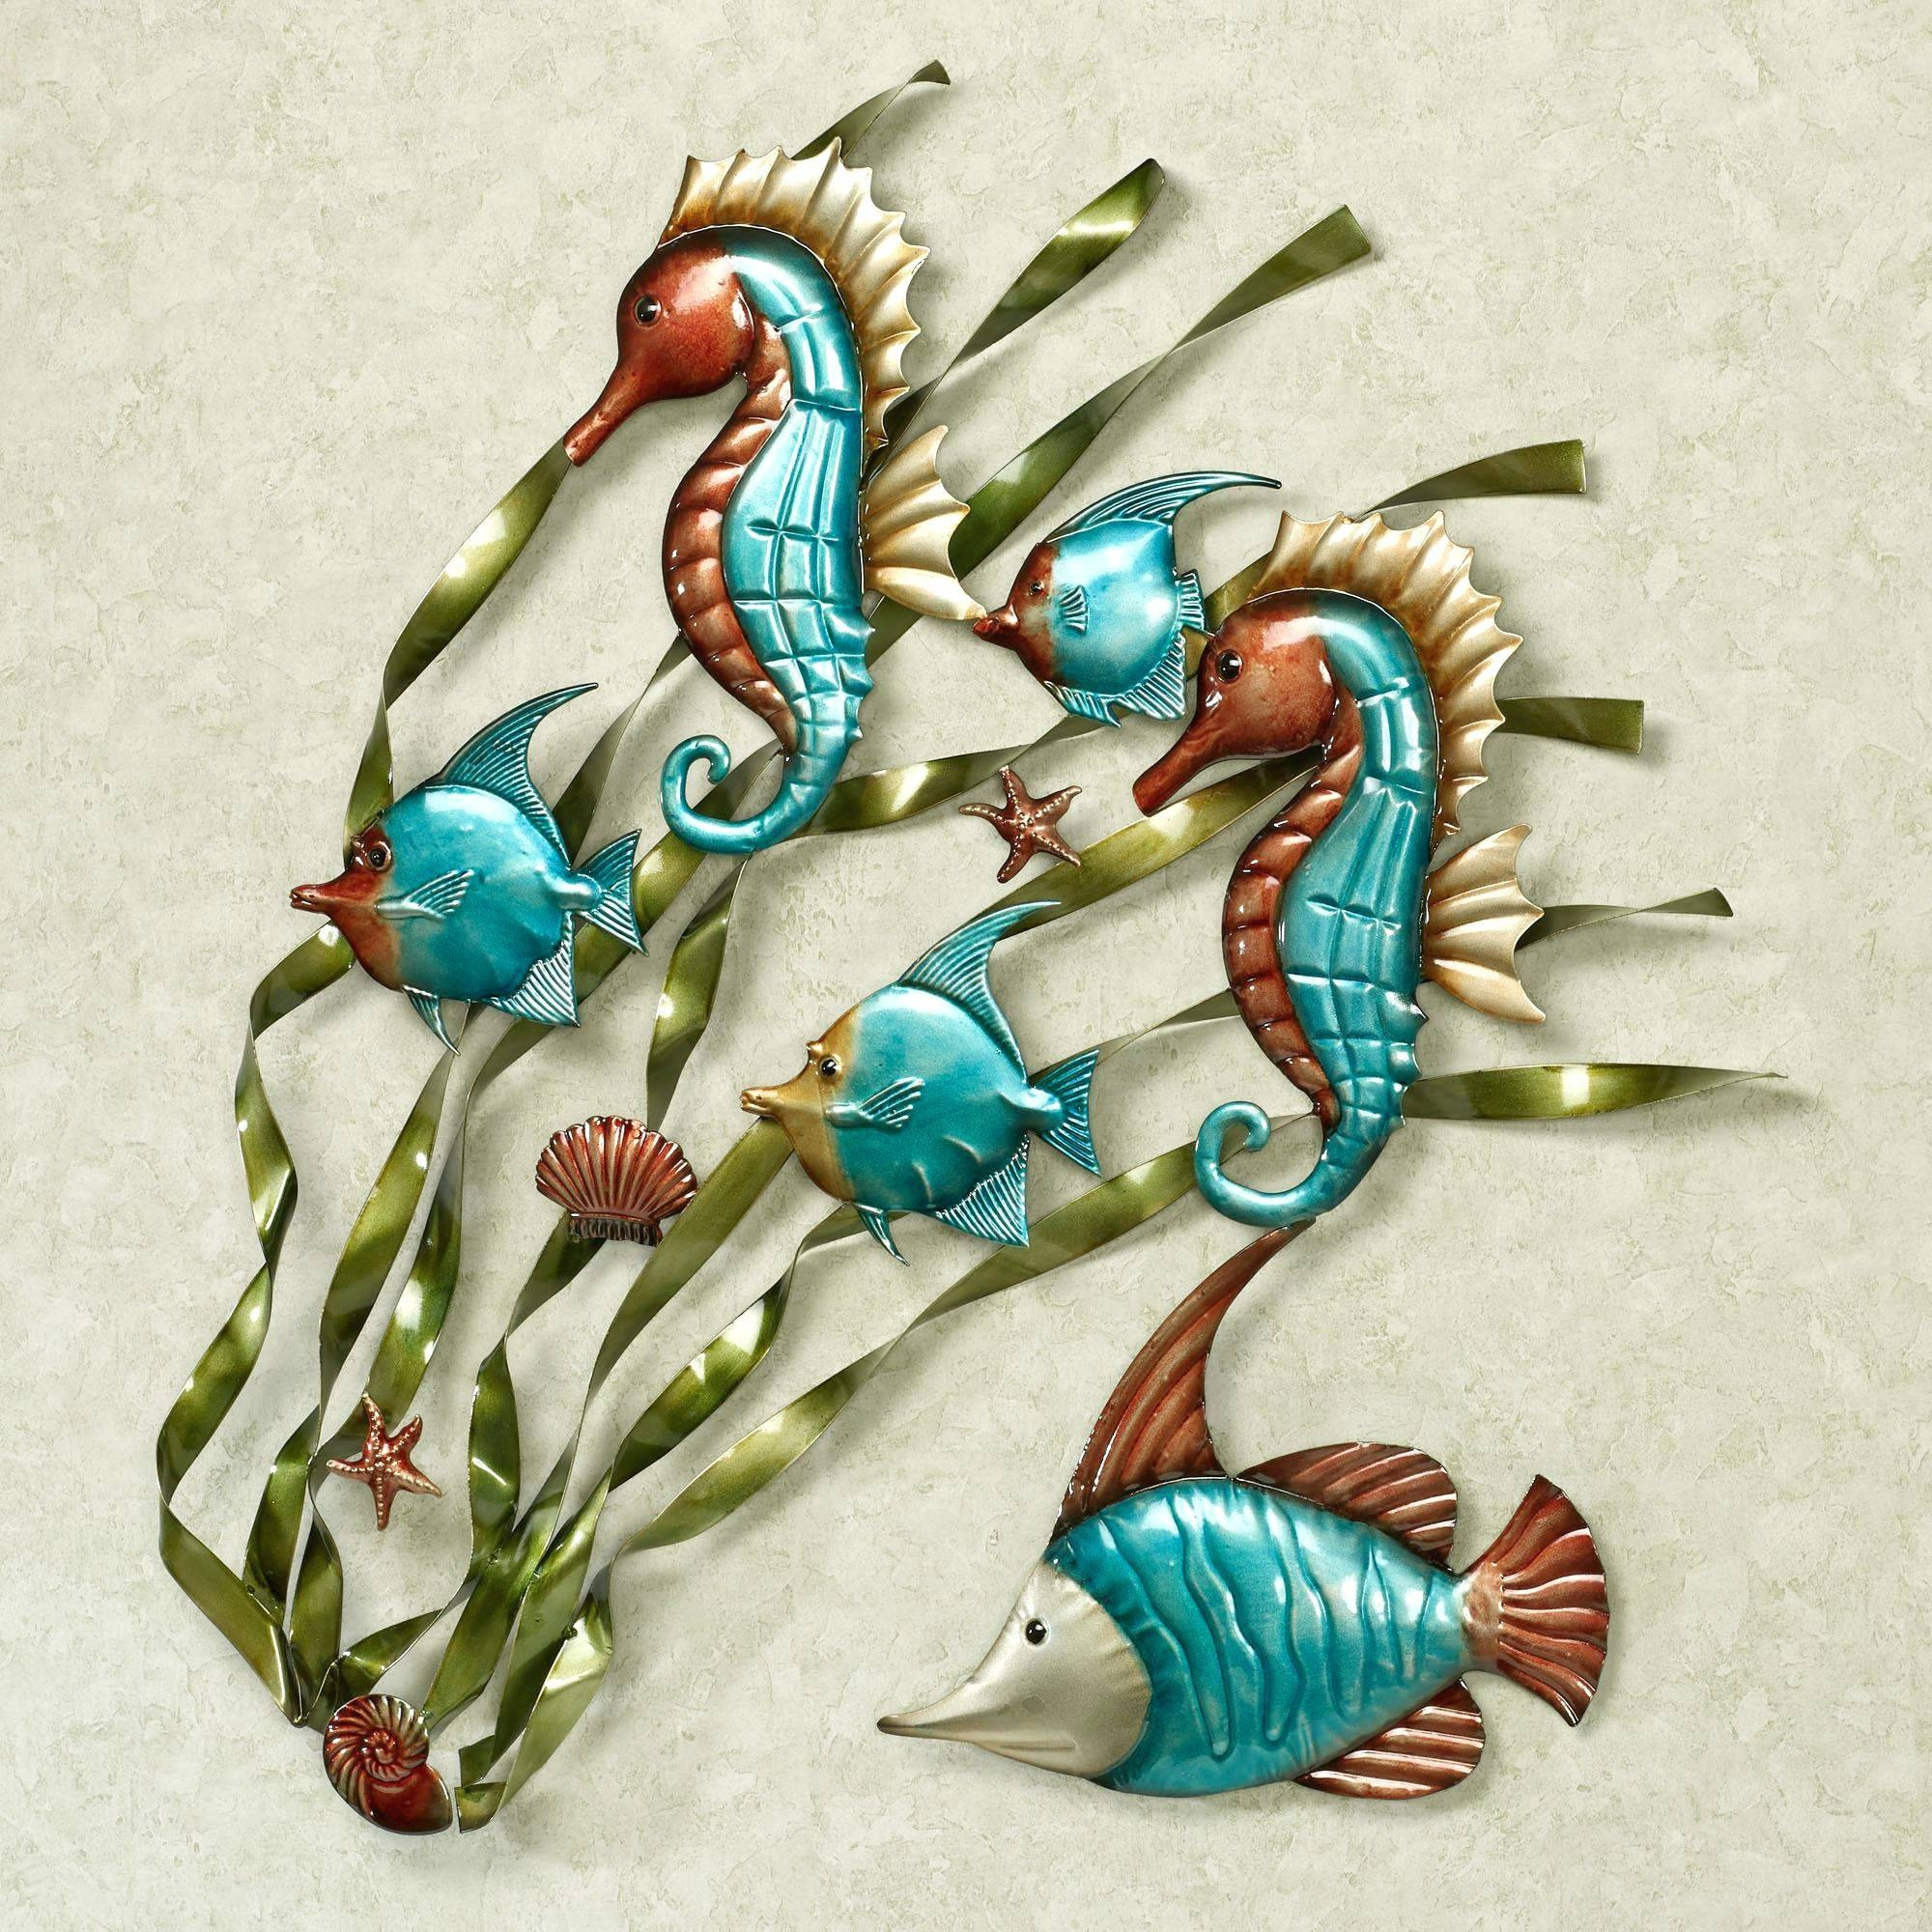 Wall Arts ~ Outdoor Metal Wall Art Fish Metal Fish Wall Art Nz Cod For Most Recent Tropical Fish Metal Wall Art (View 18 of 20)